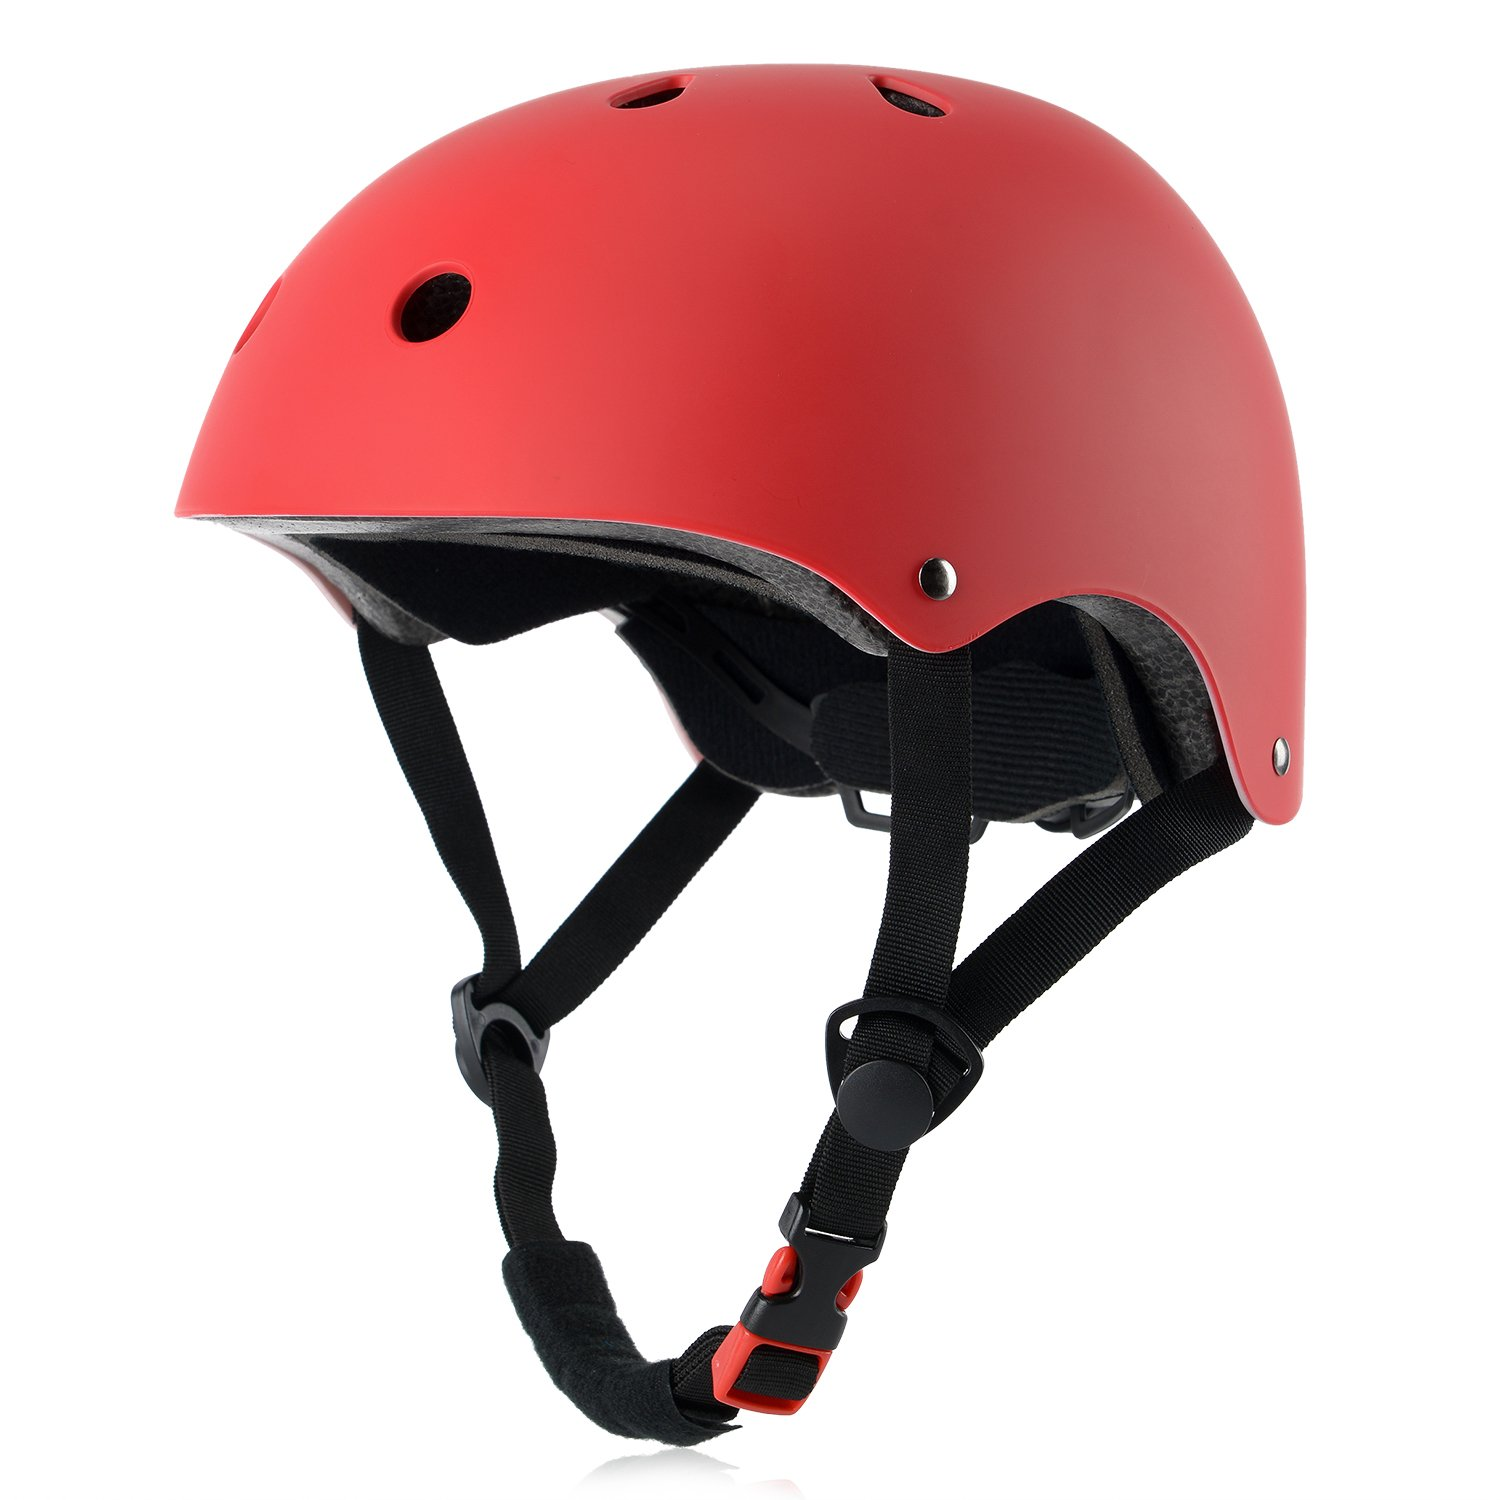 Ouwoer Kids Bike Helmet, CPSC Certified, Adjustable and Multi-Sport, from Toddler to Youth (Red)